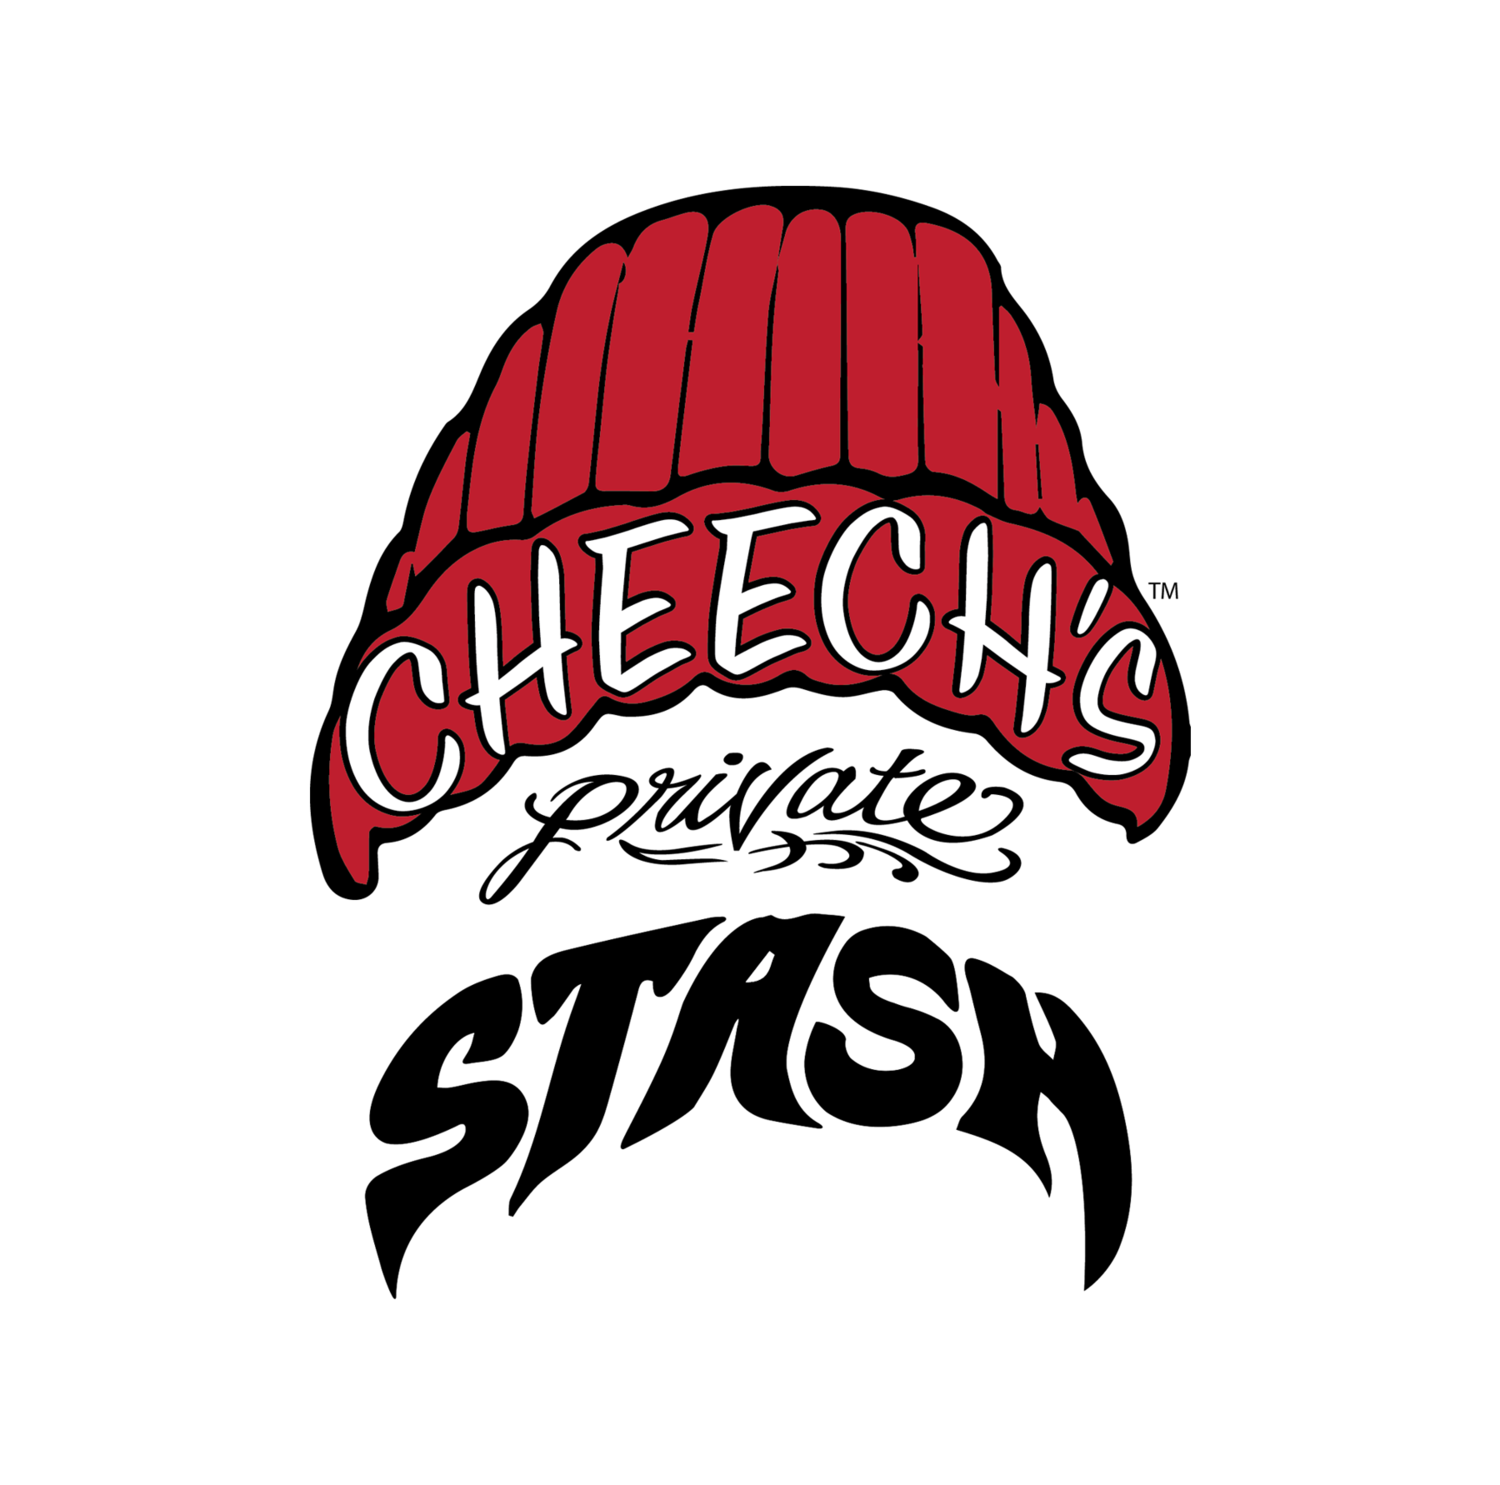 CALIFORNIA — Cheech's Private Stash